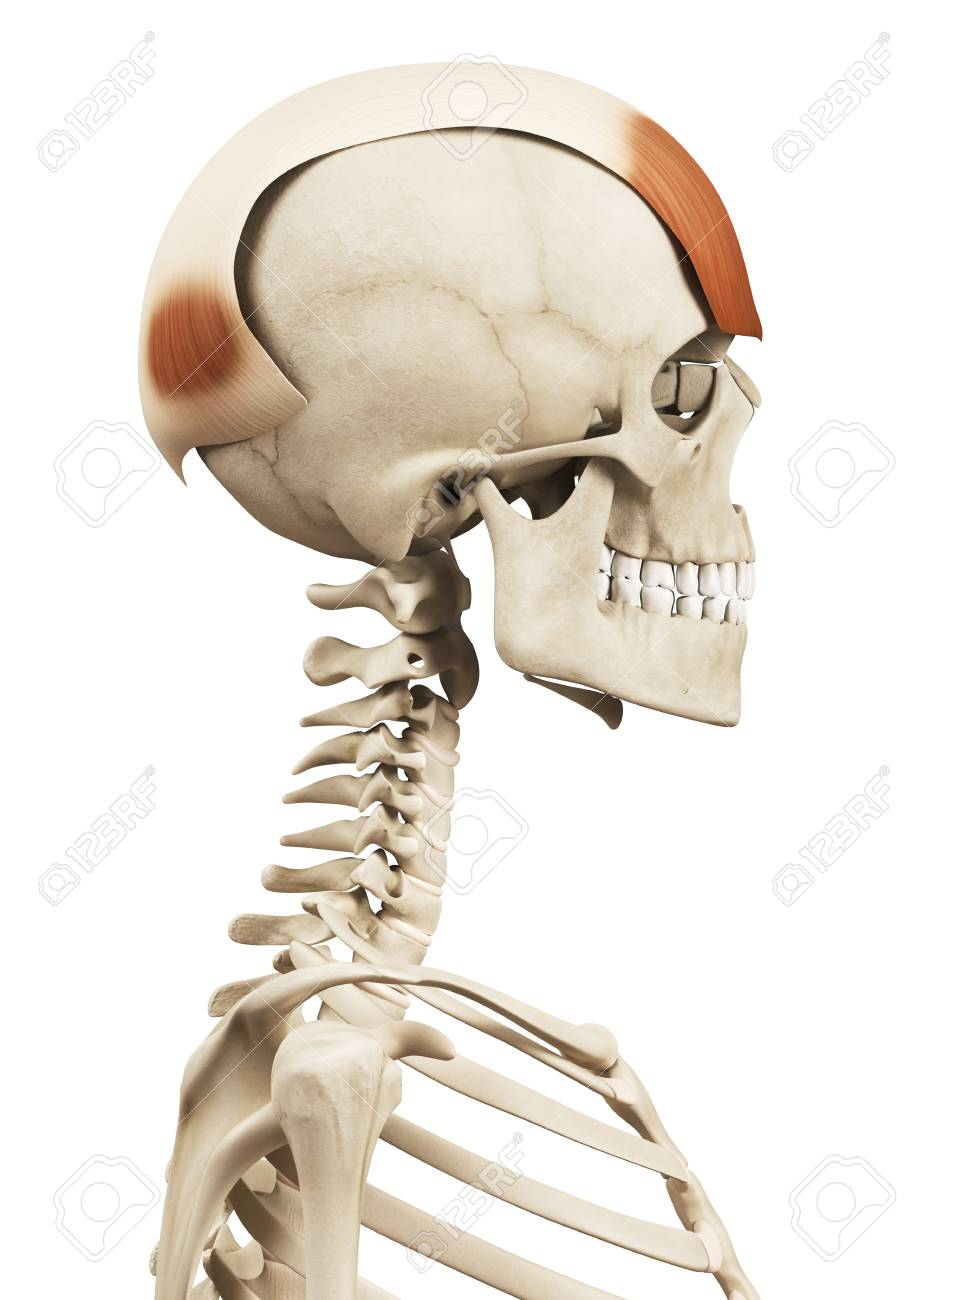 Human Head Muscles, Illustration Stock Photo, Picture And Royalty ...